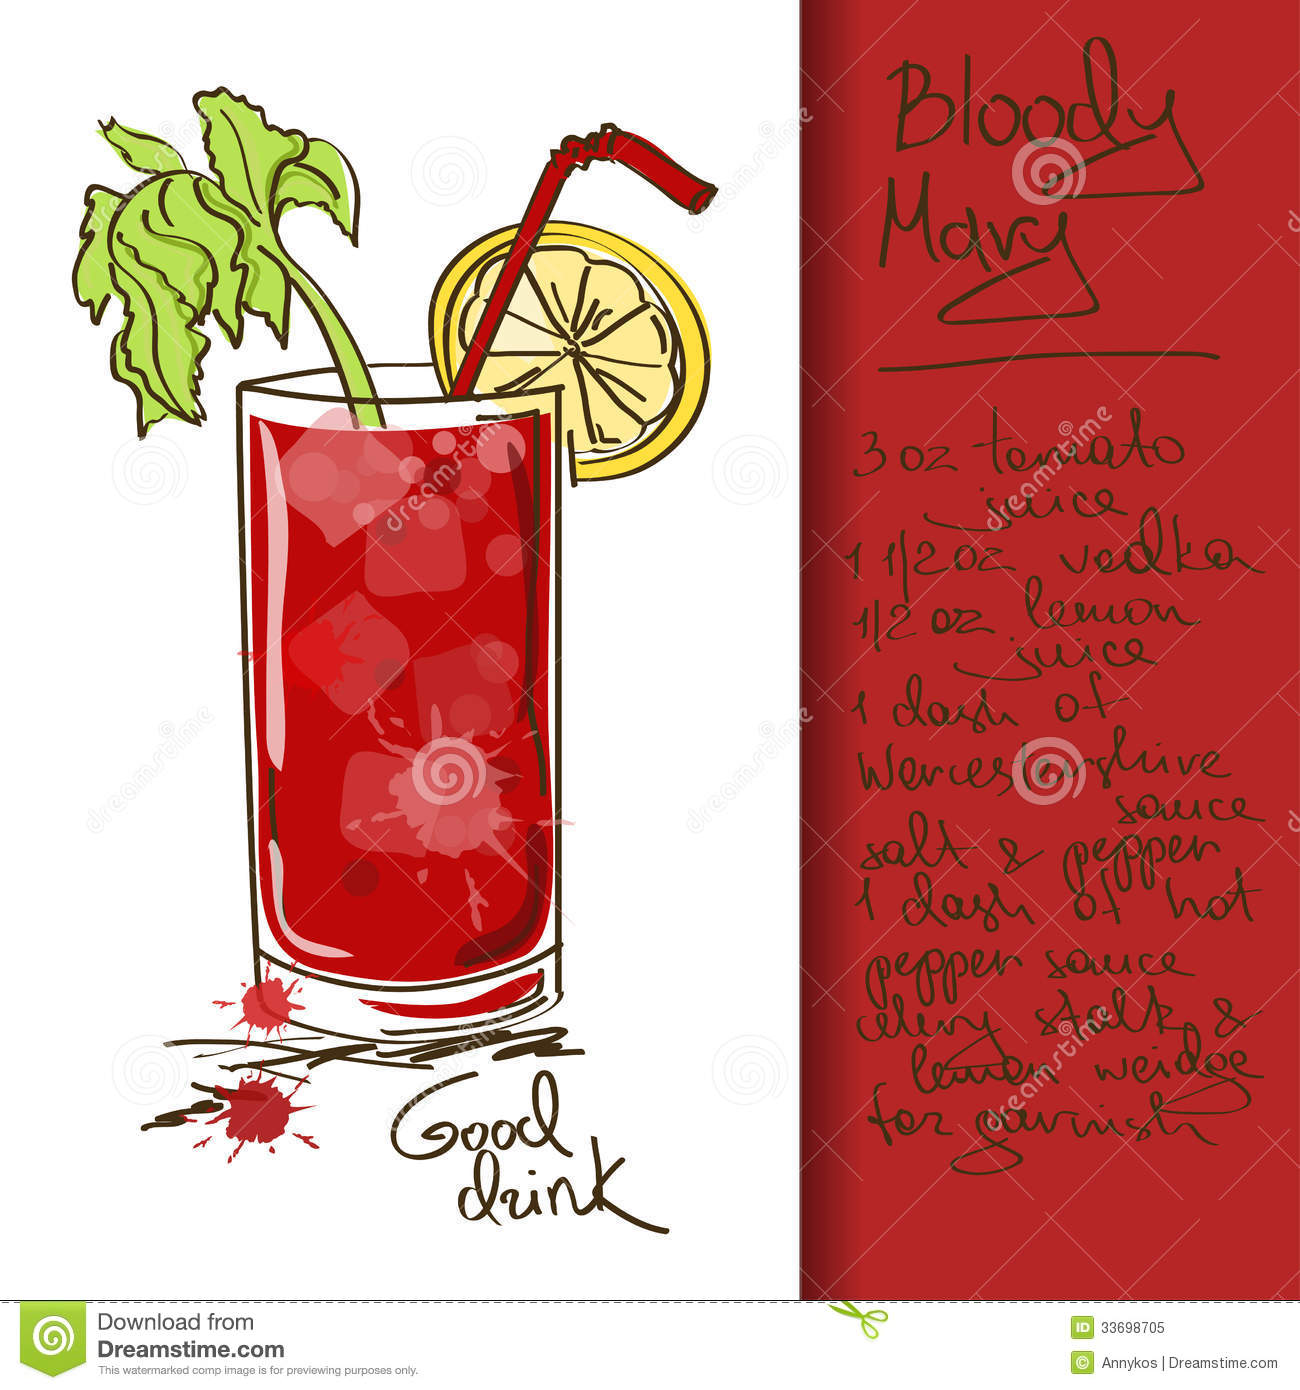 bloody mary drink clipart - photo #15